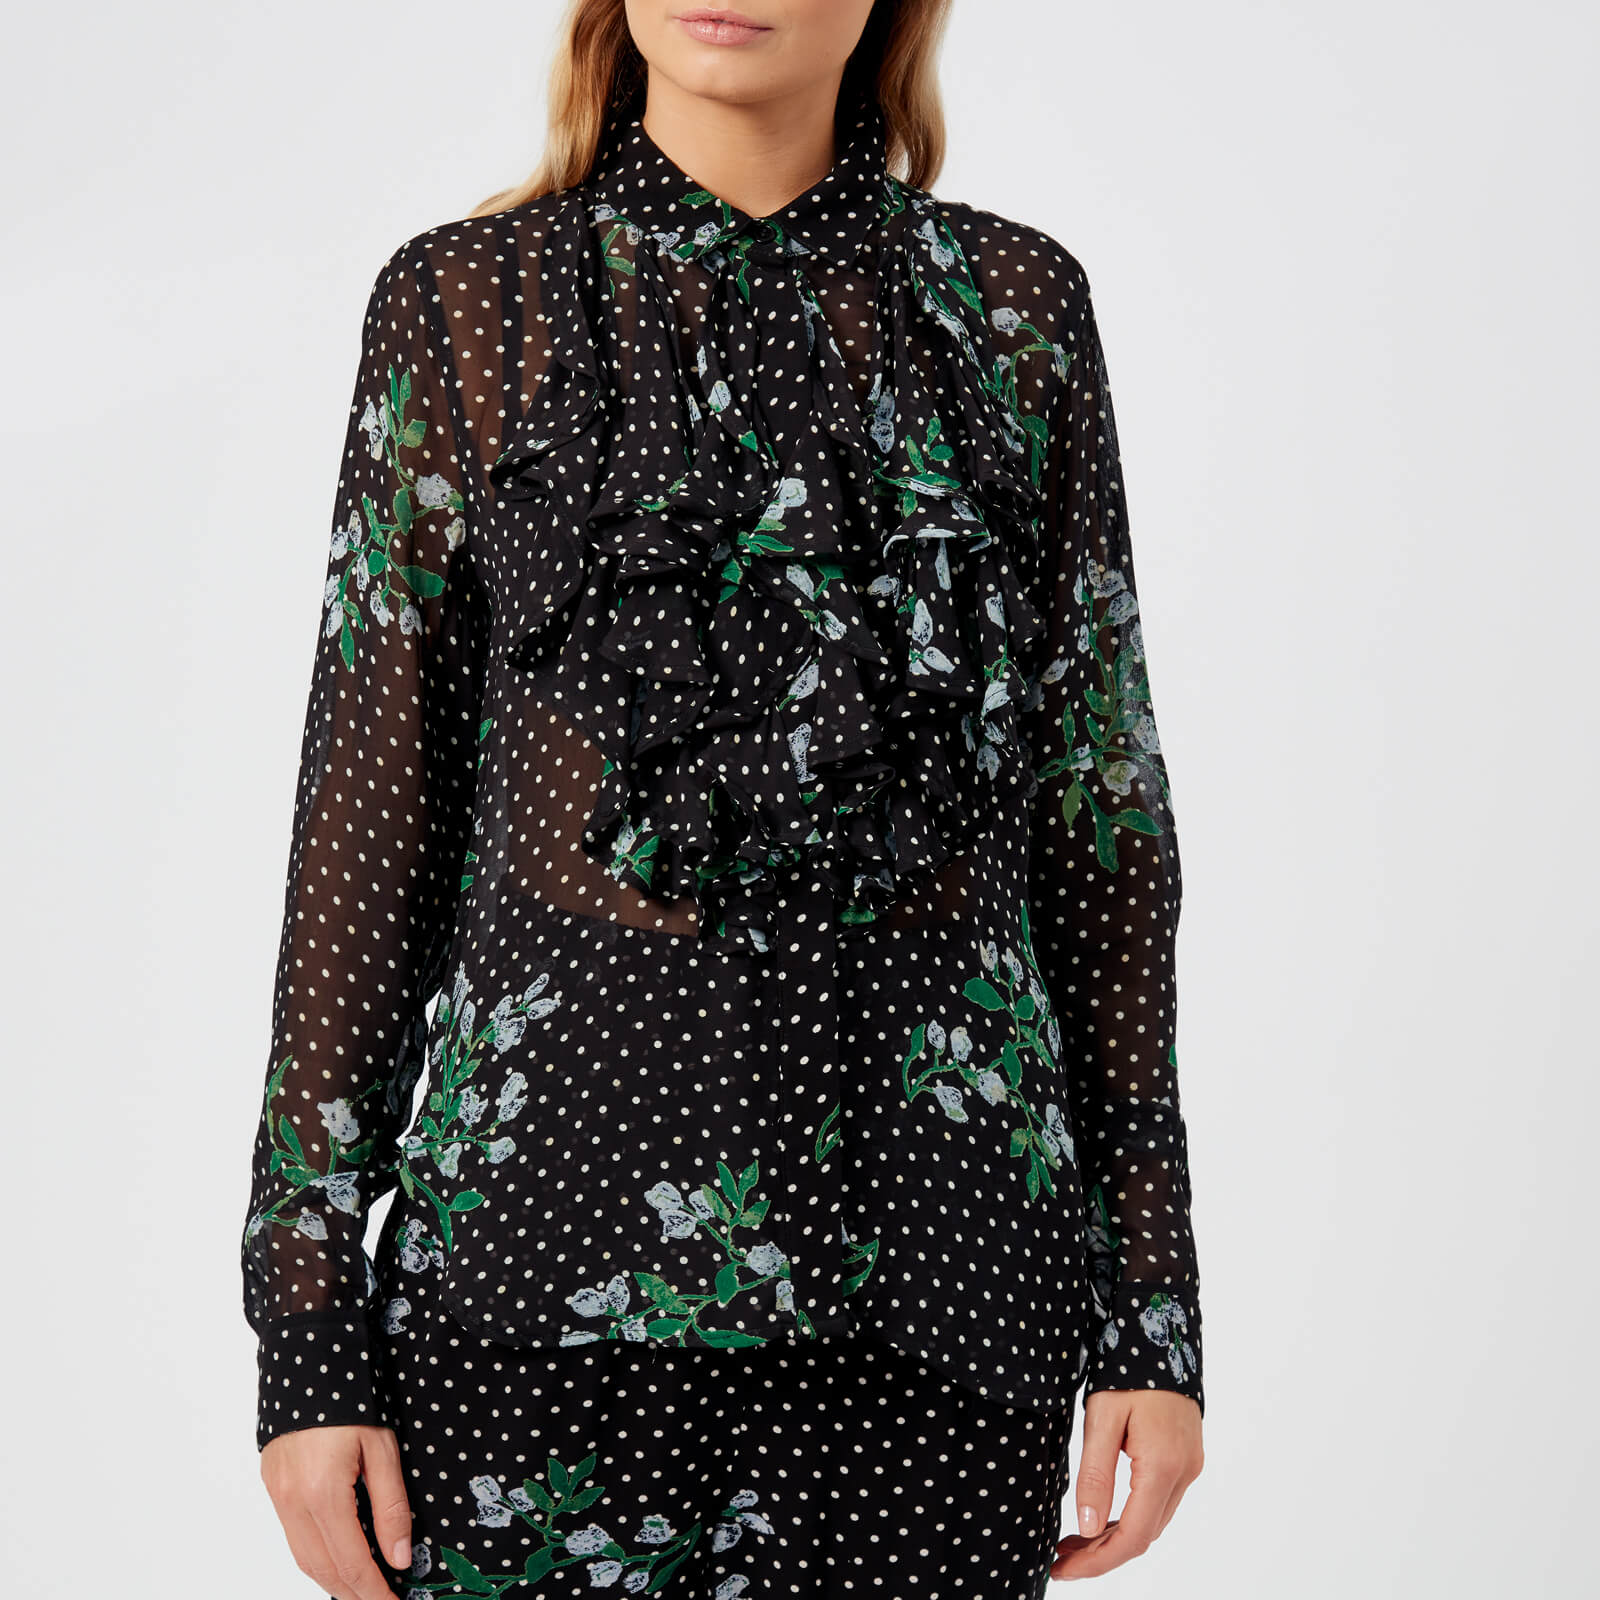 d11154d3 Ganni Women's Rometty Georgette Blouse - Black - Free UK Delivery over £50